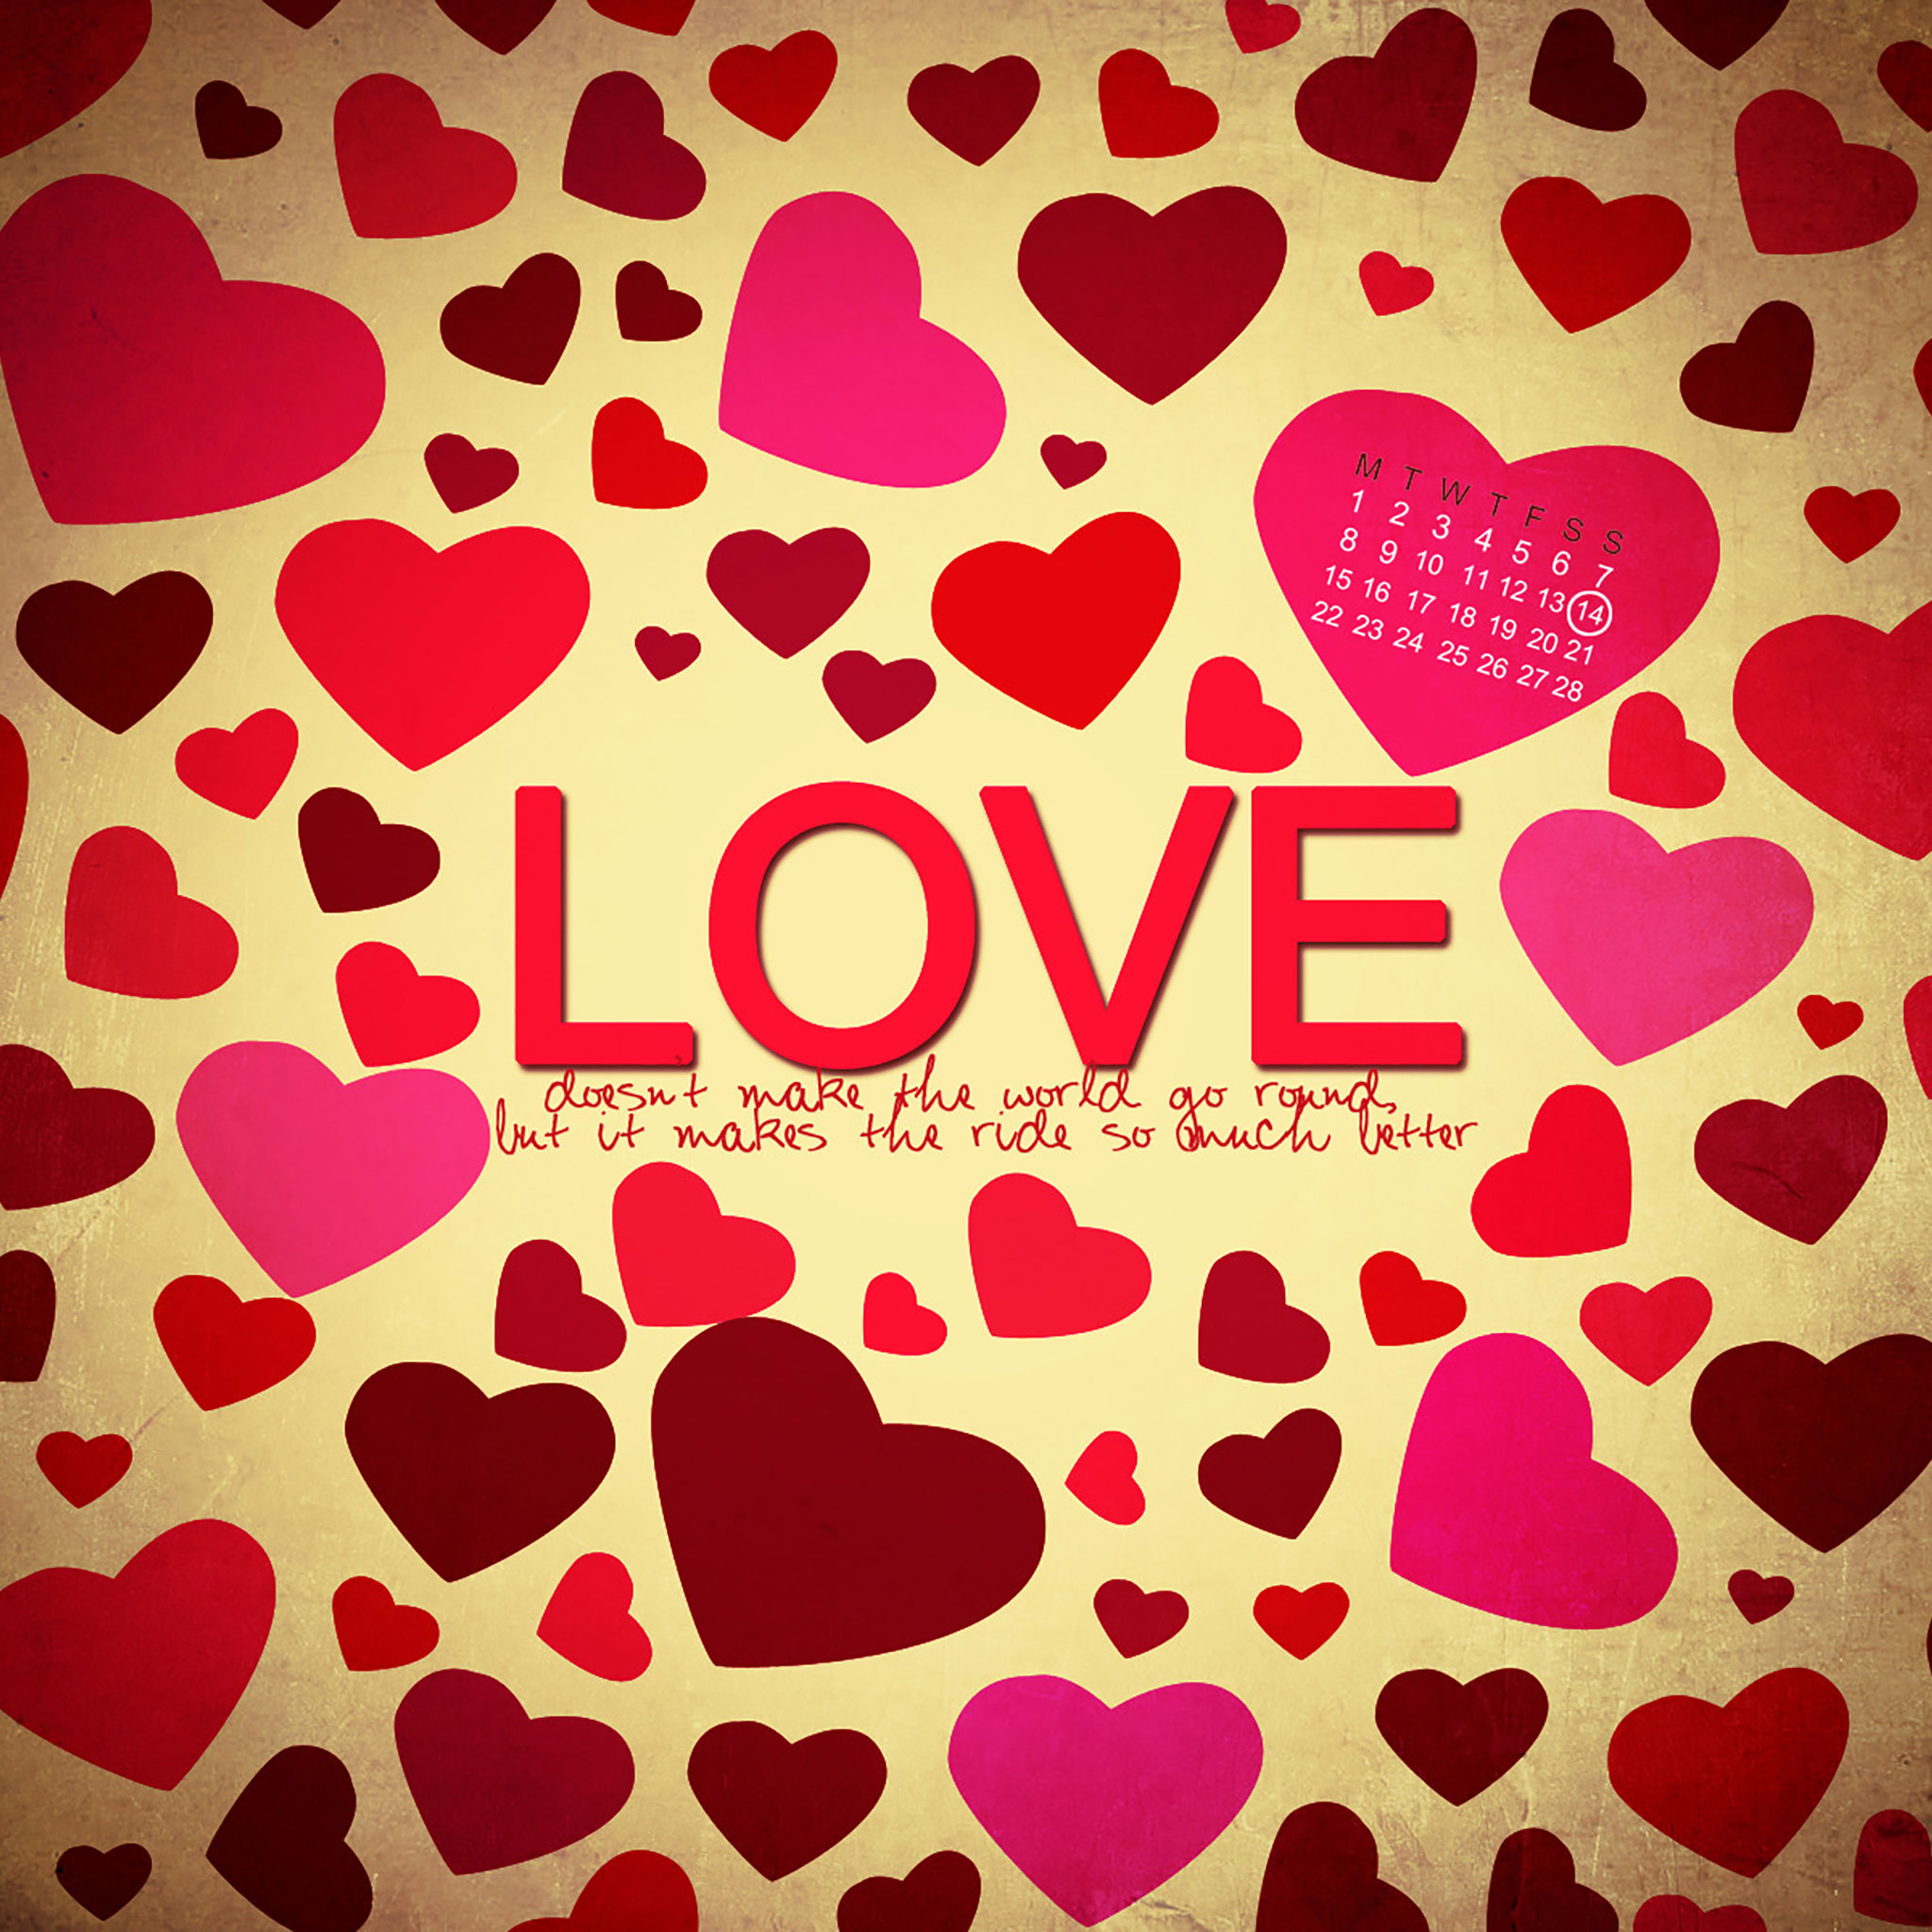 valentines day backgrounds wallpapers - photo #33